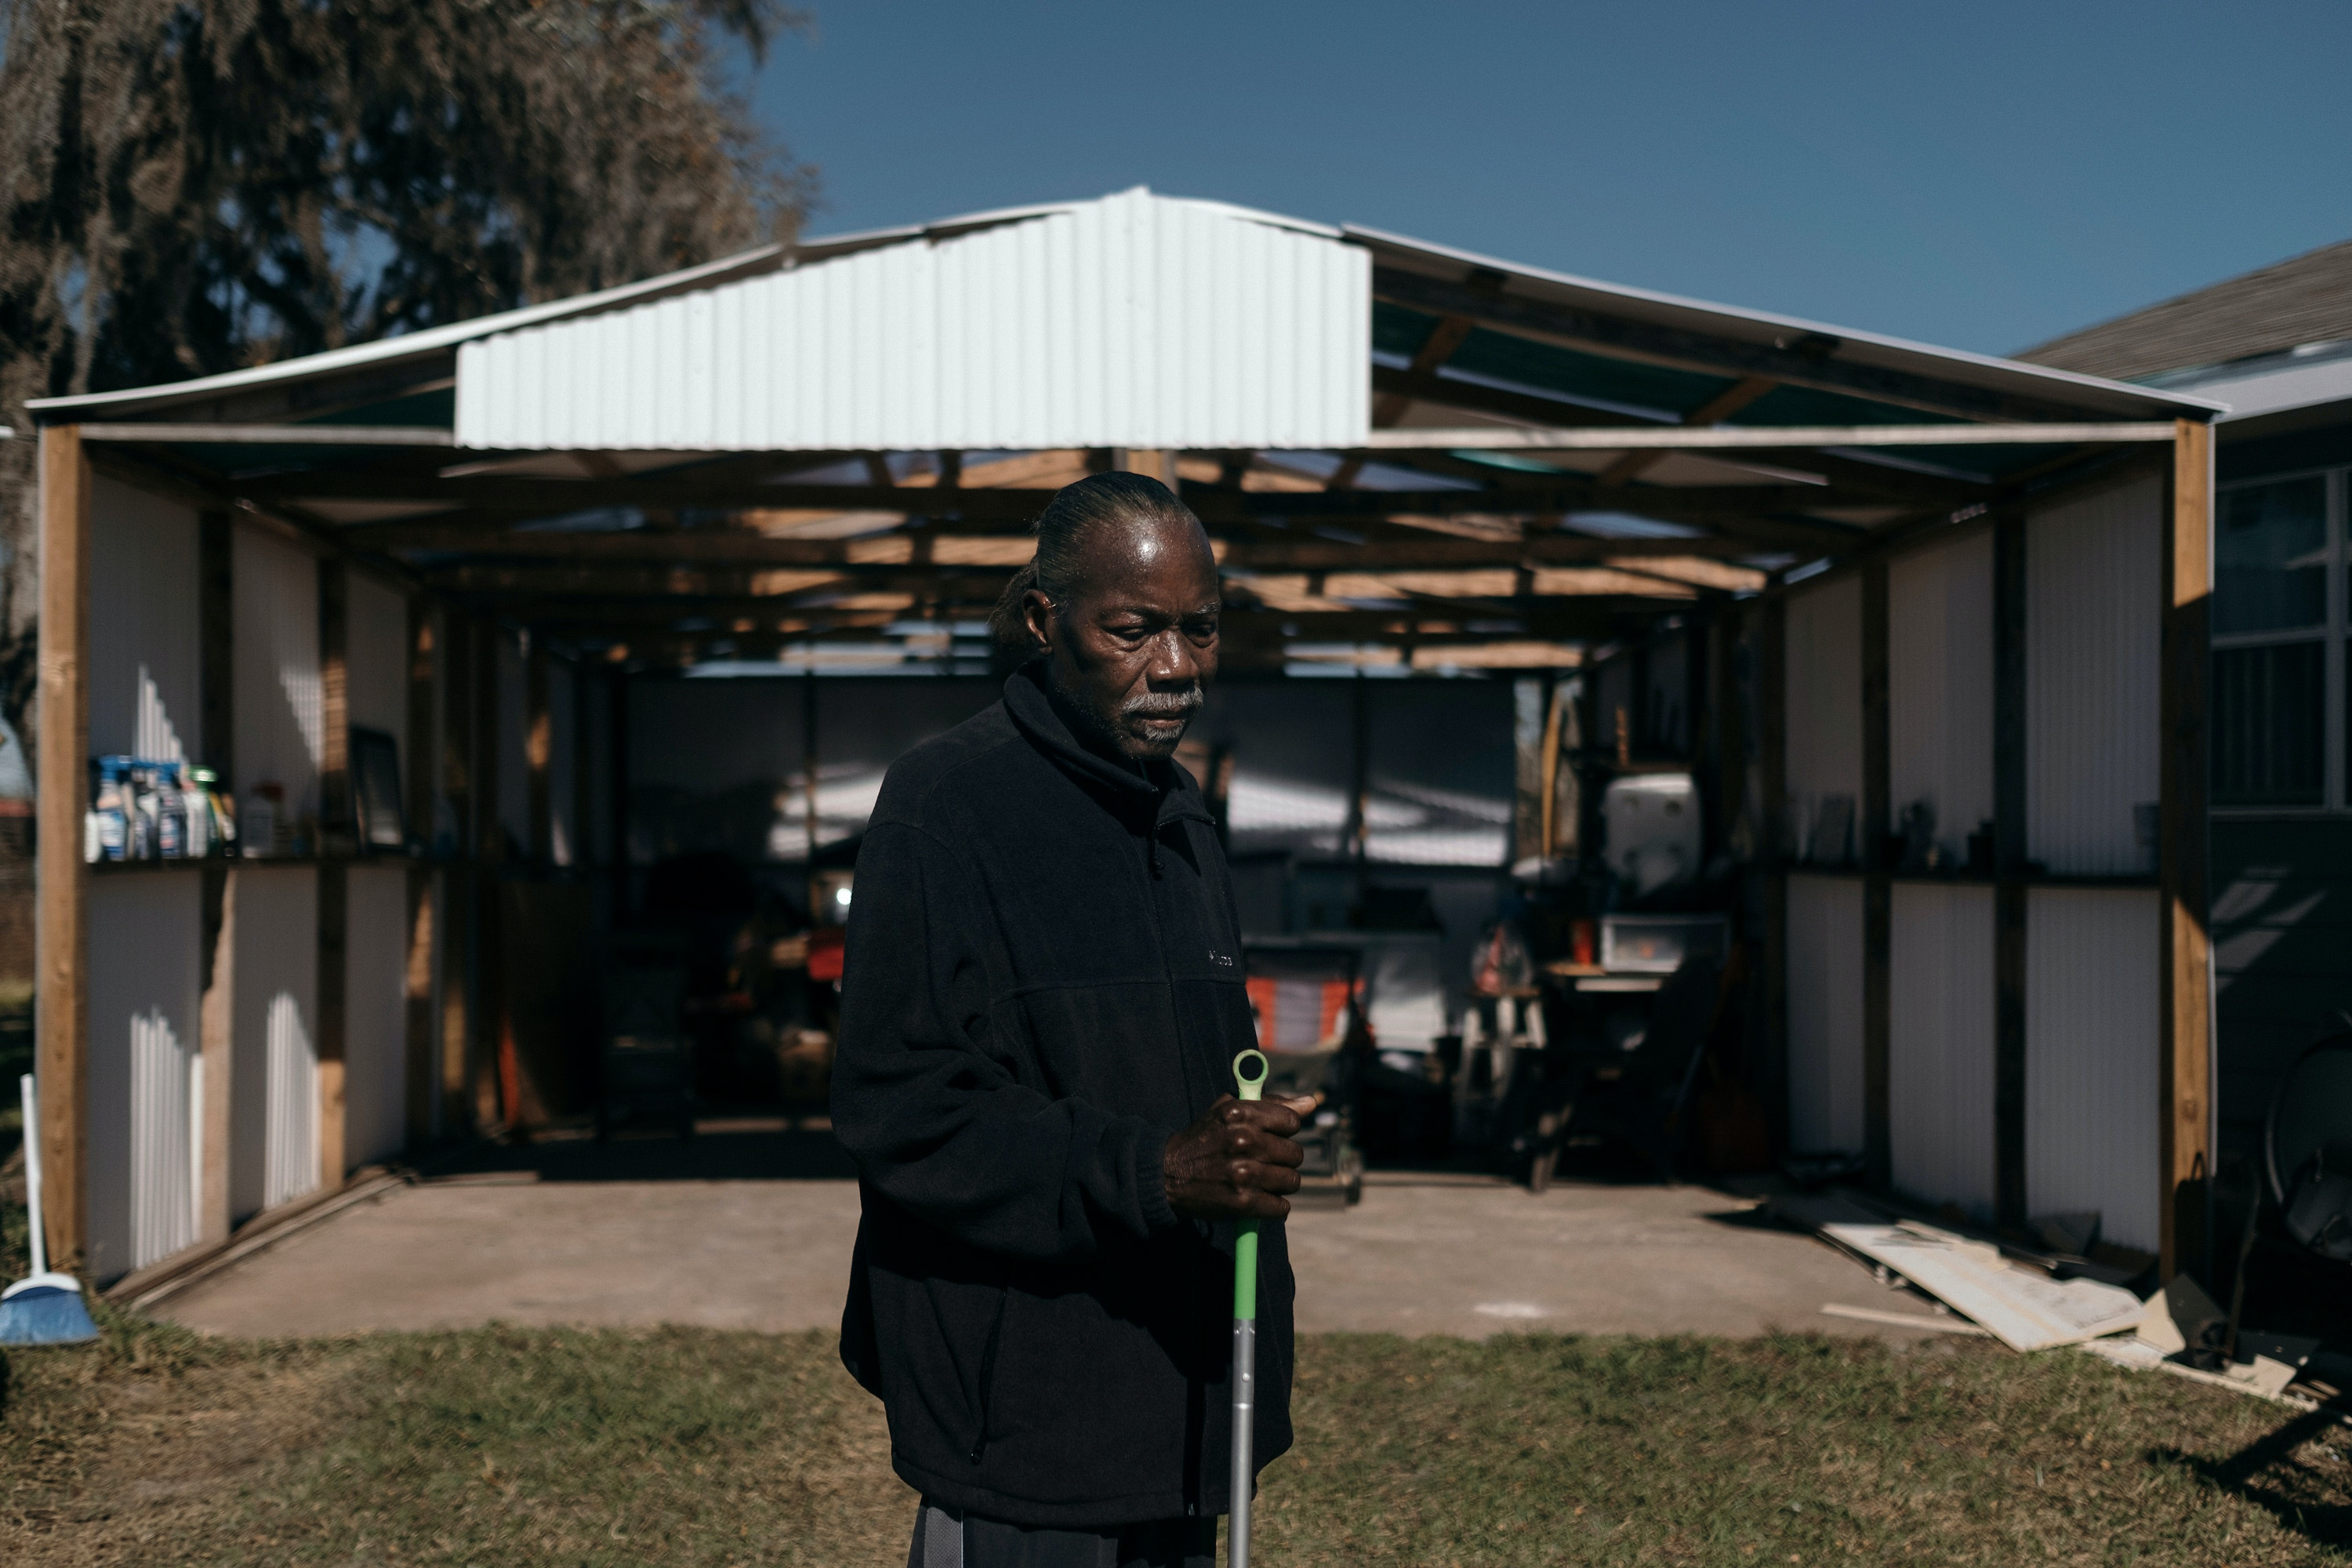 Clarence Thompson stands outside of his Brazoria, Texas home assisted by a walking stick, on Wednesday, December 18th, 2019.Todd Spoth for The Intercept.